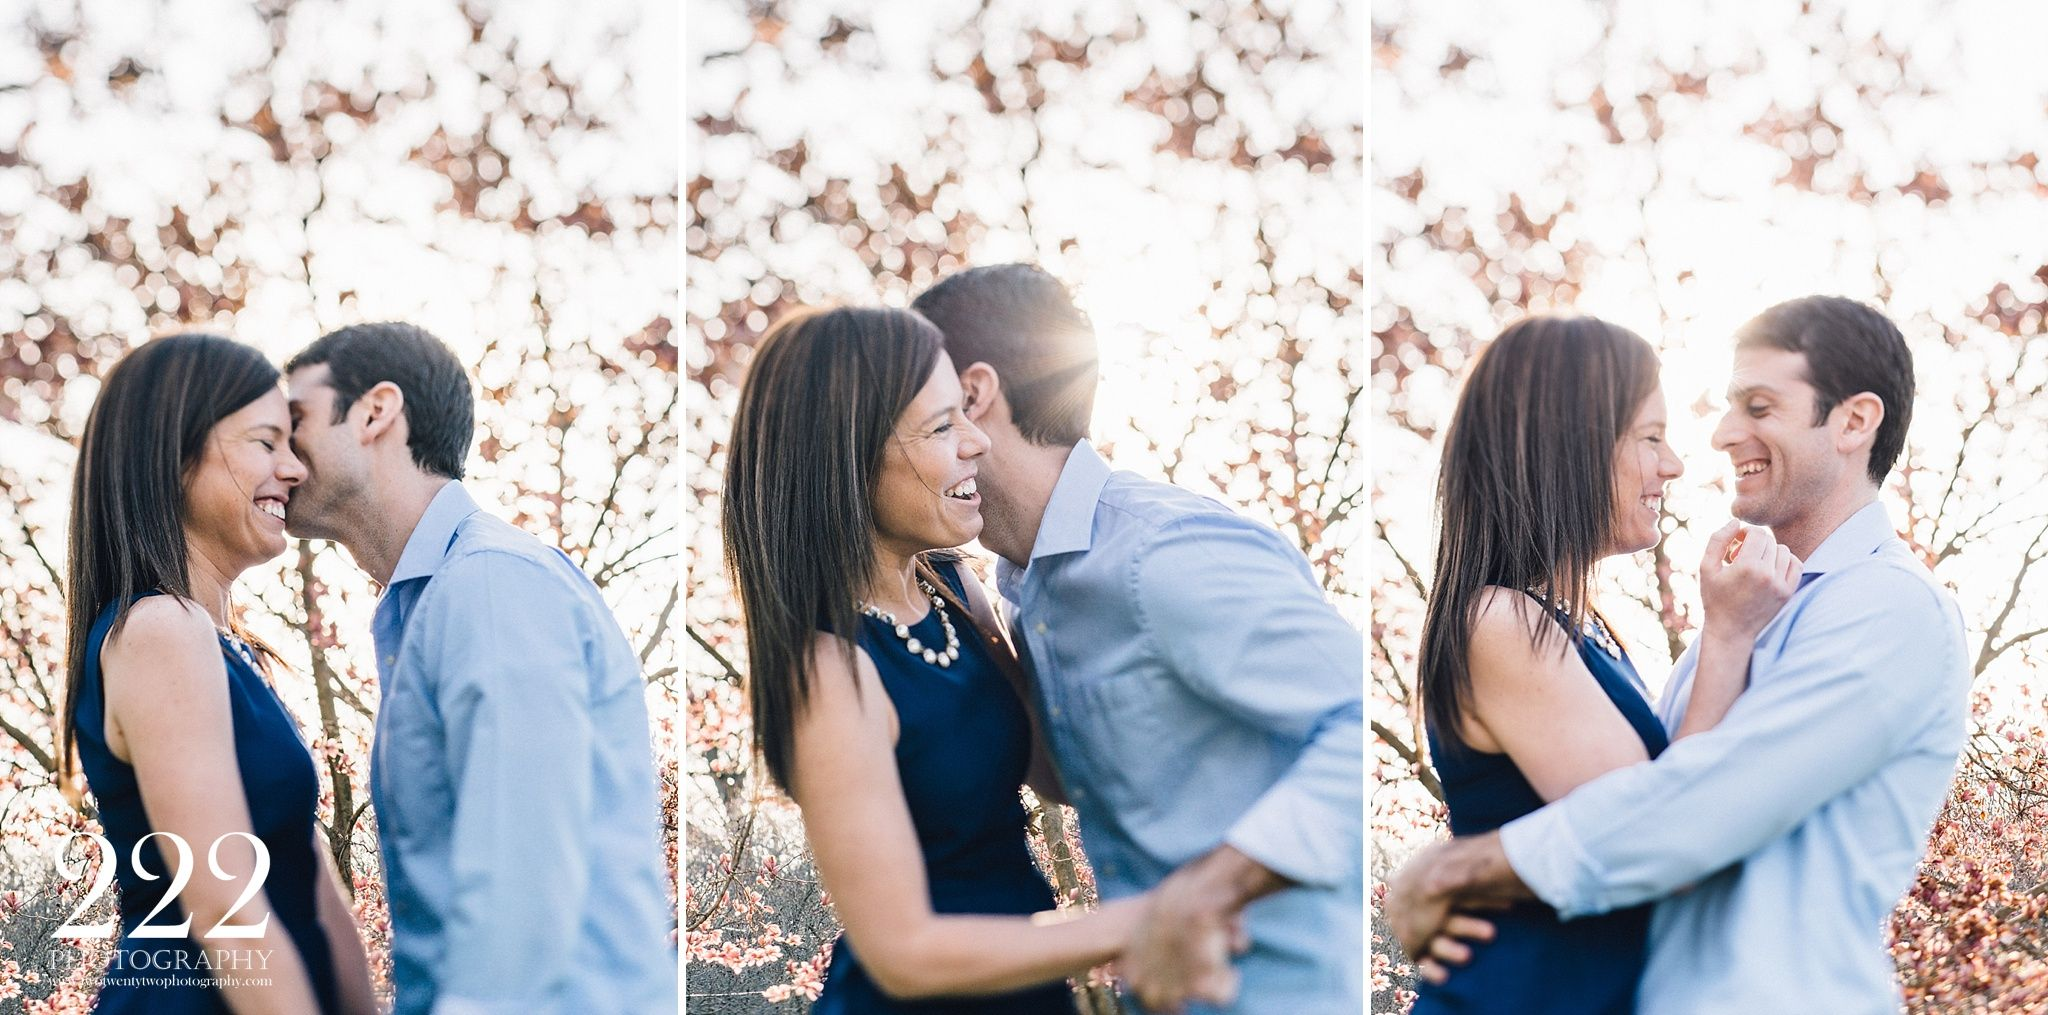 Short North engagement photography with 222 Photography in Columbus, Ohio.  www.twotwentytwophotography.com